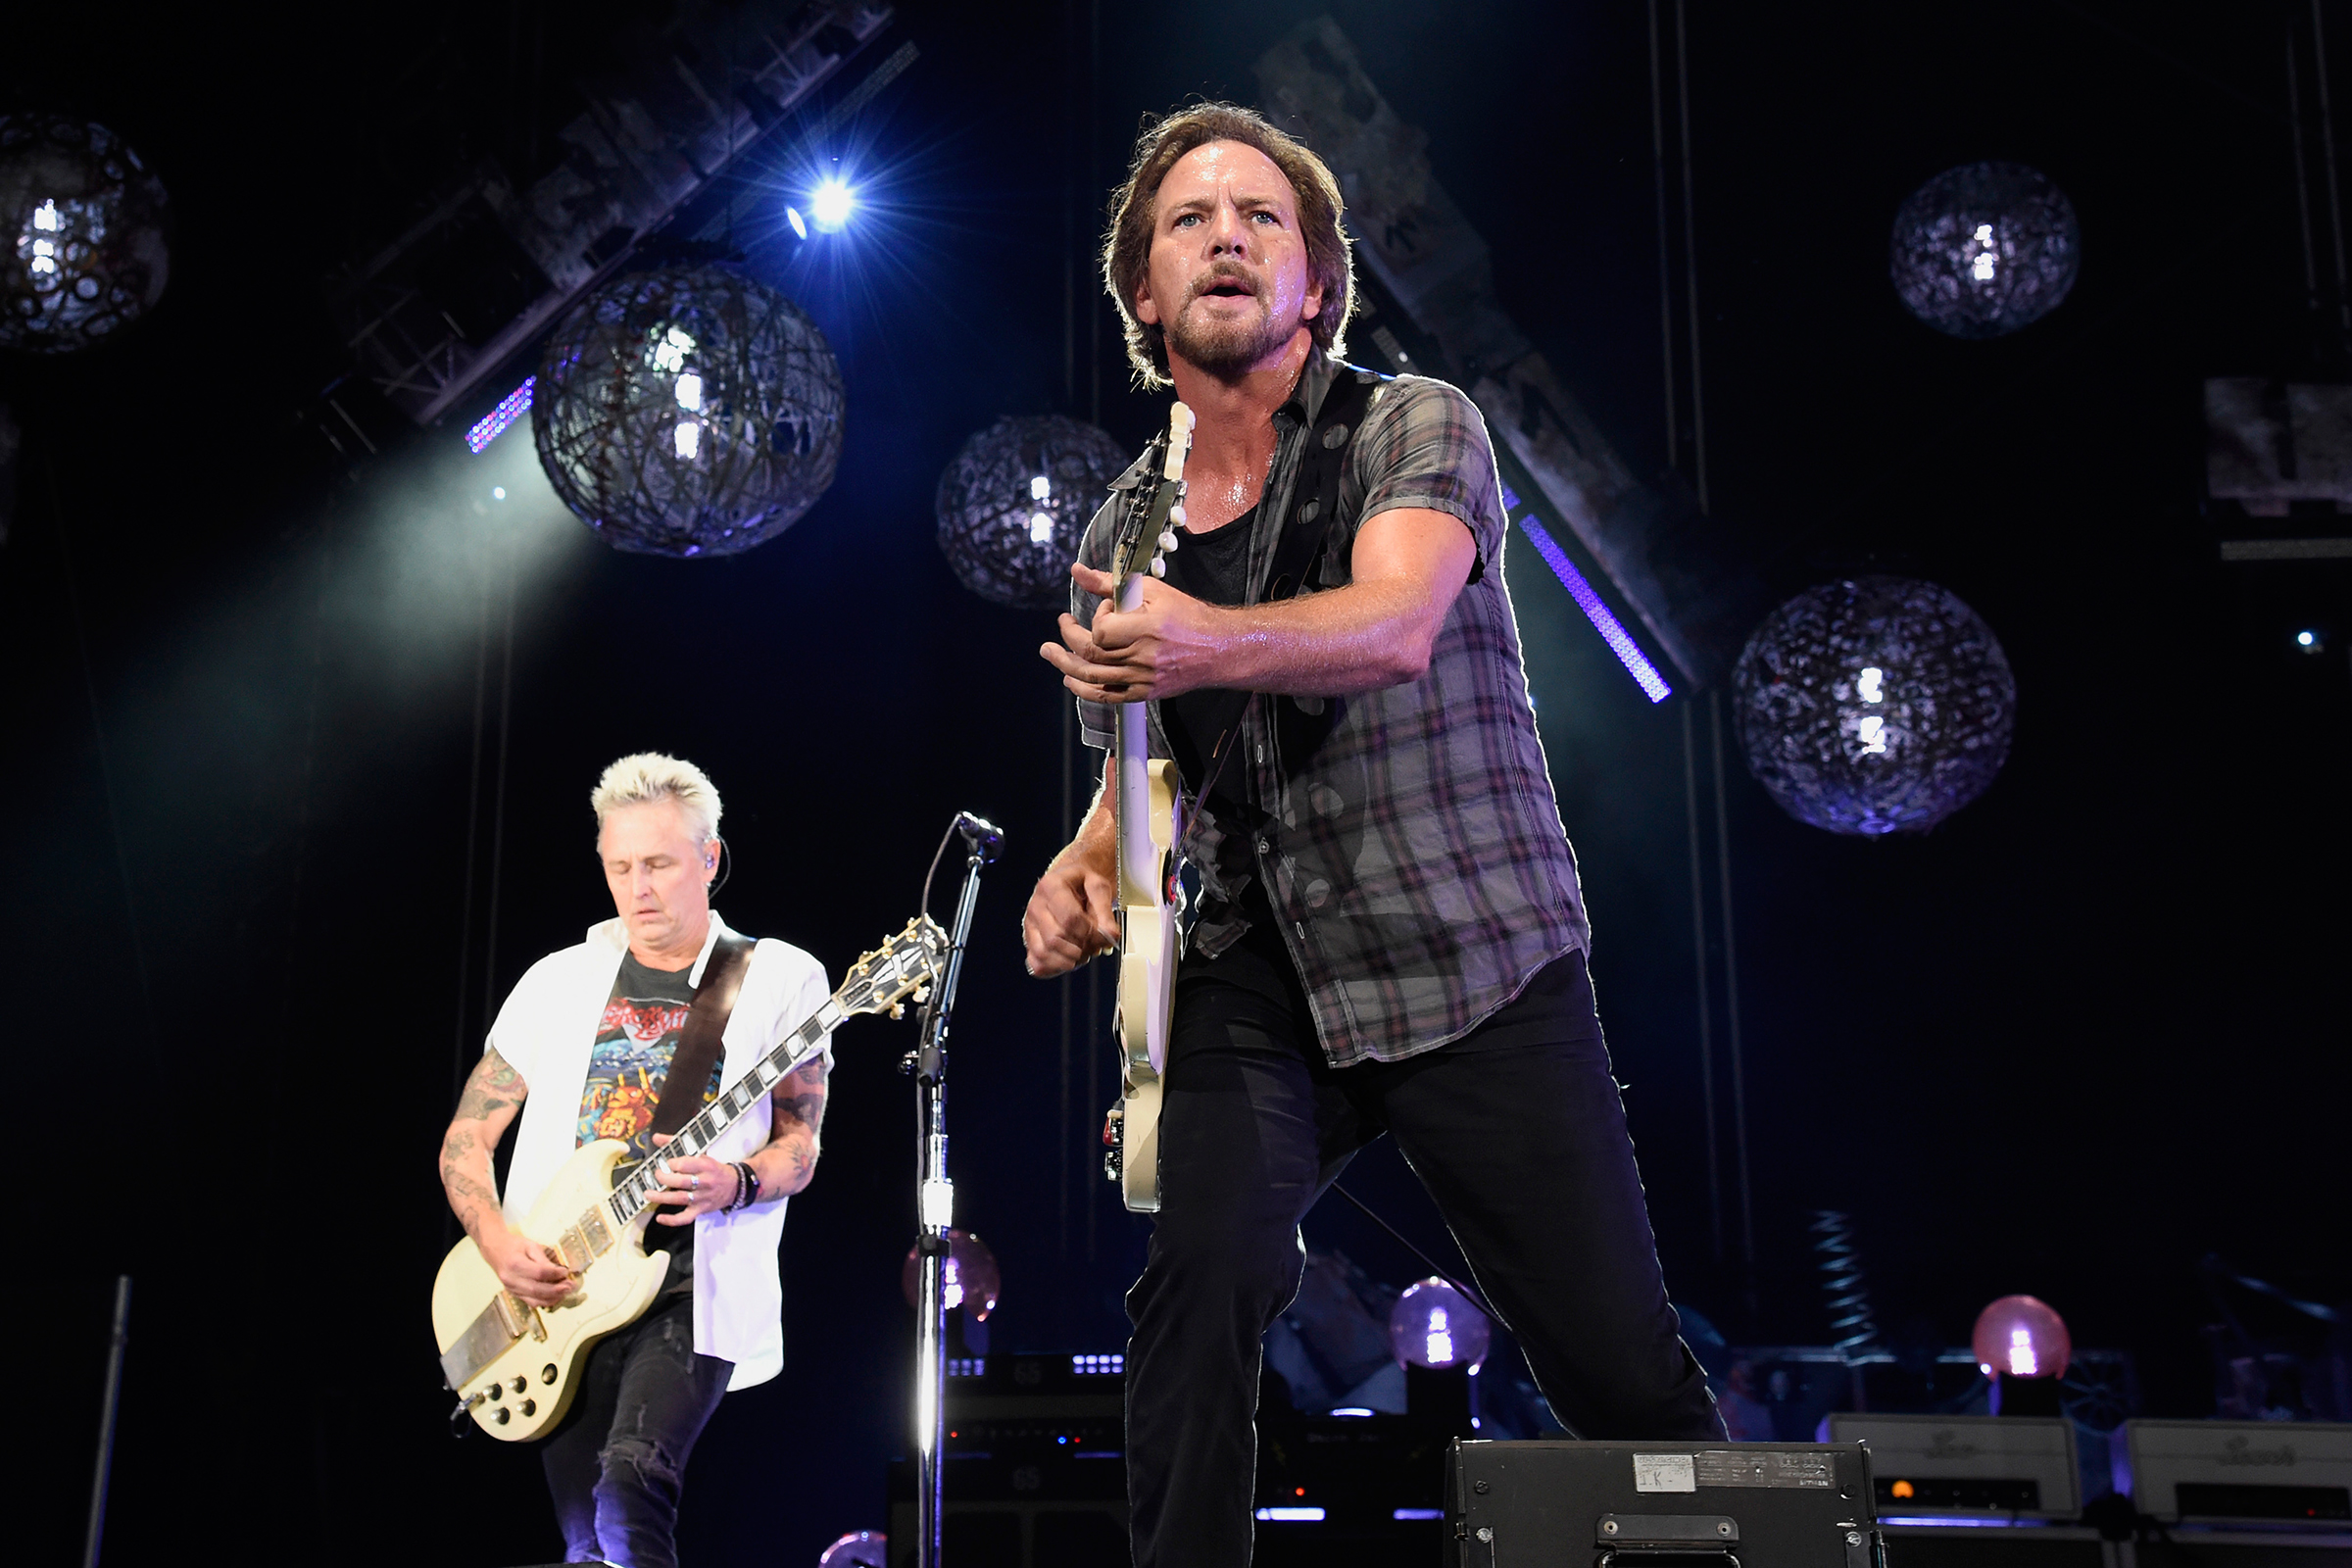 Pearl Jam to Play Intimate Apollo Theater Show Before 'Gigaton' Release